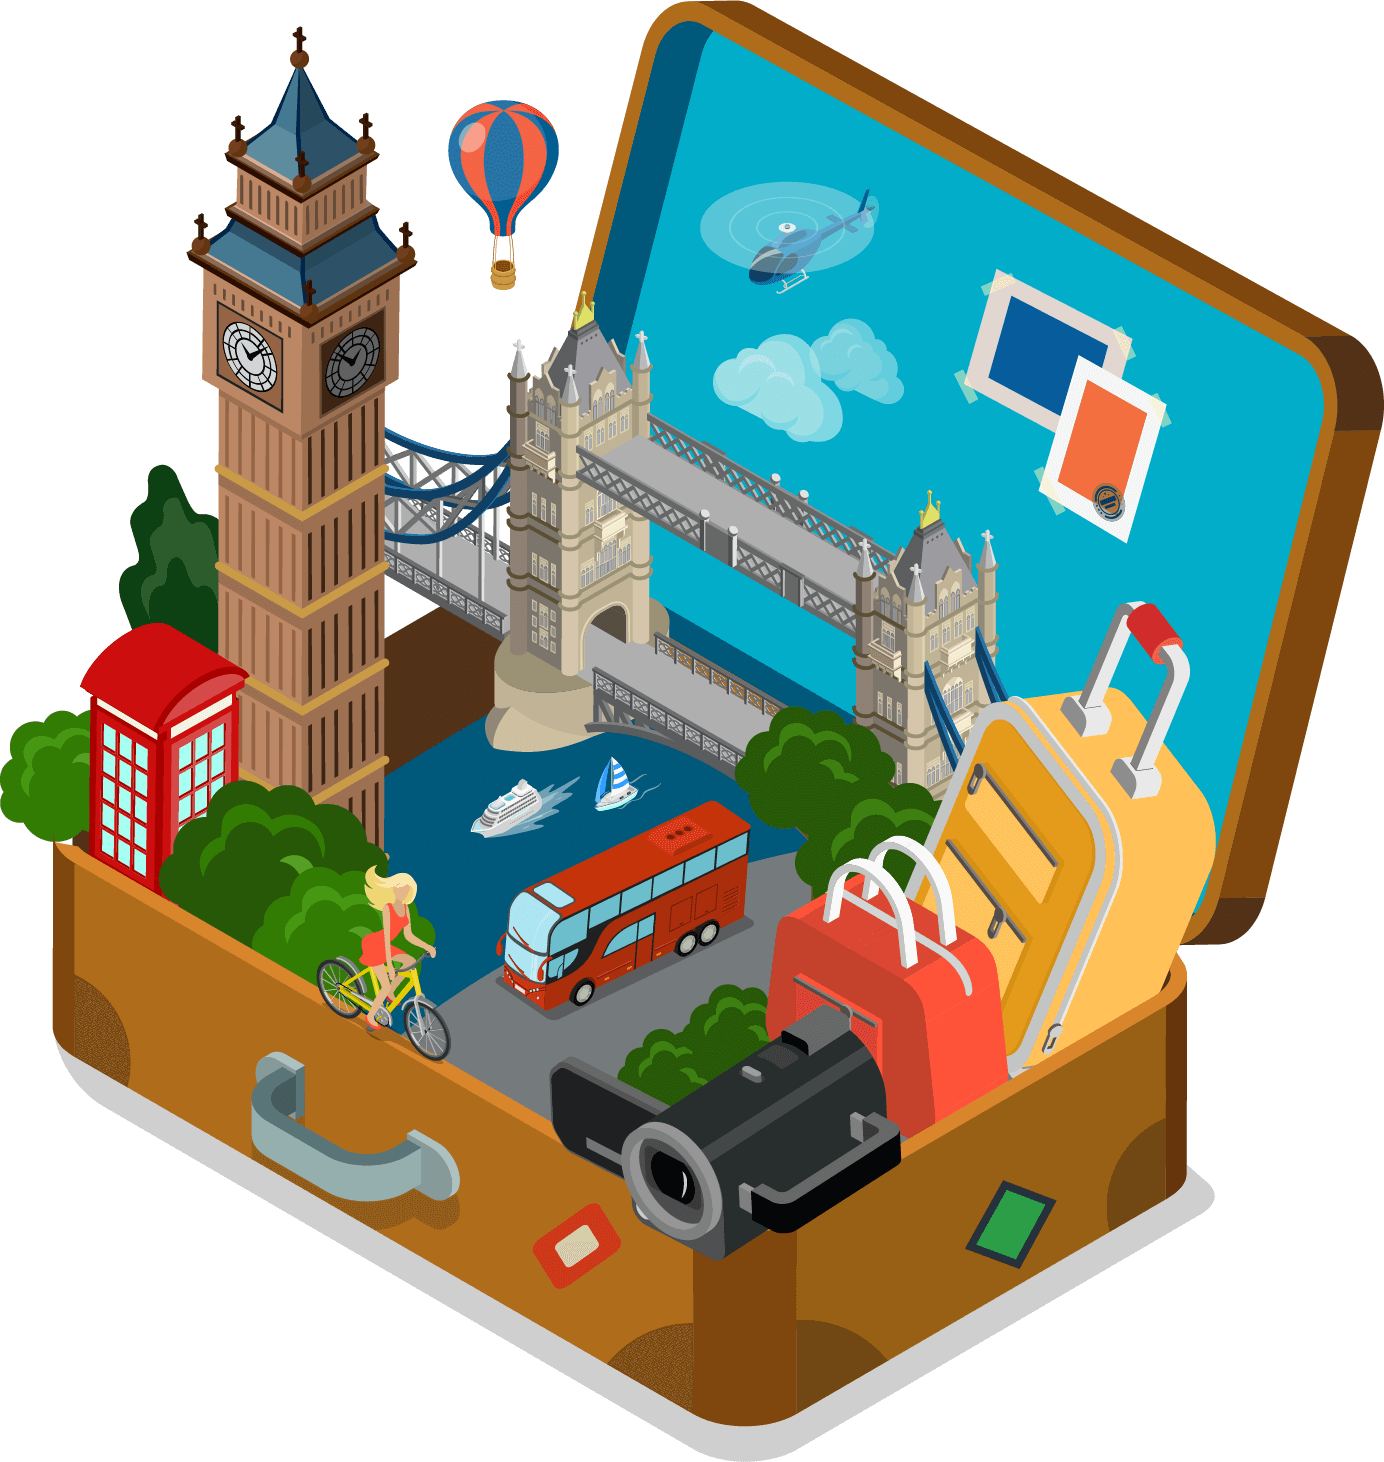 Guide to moving to london